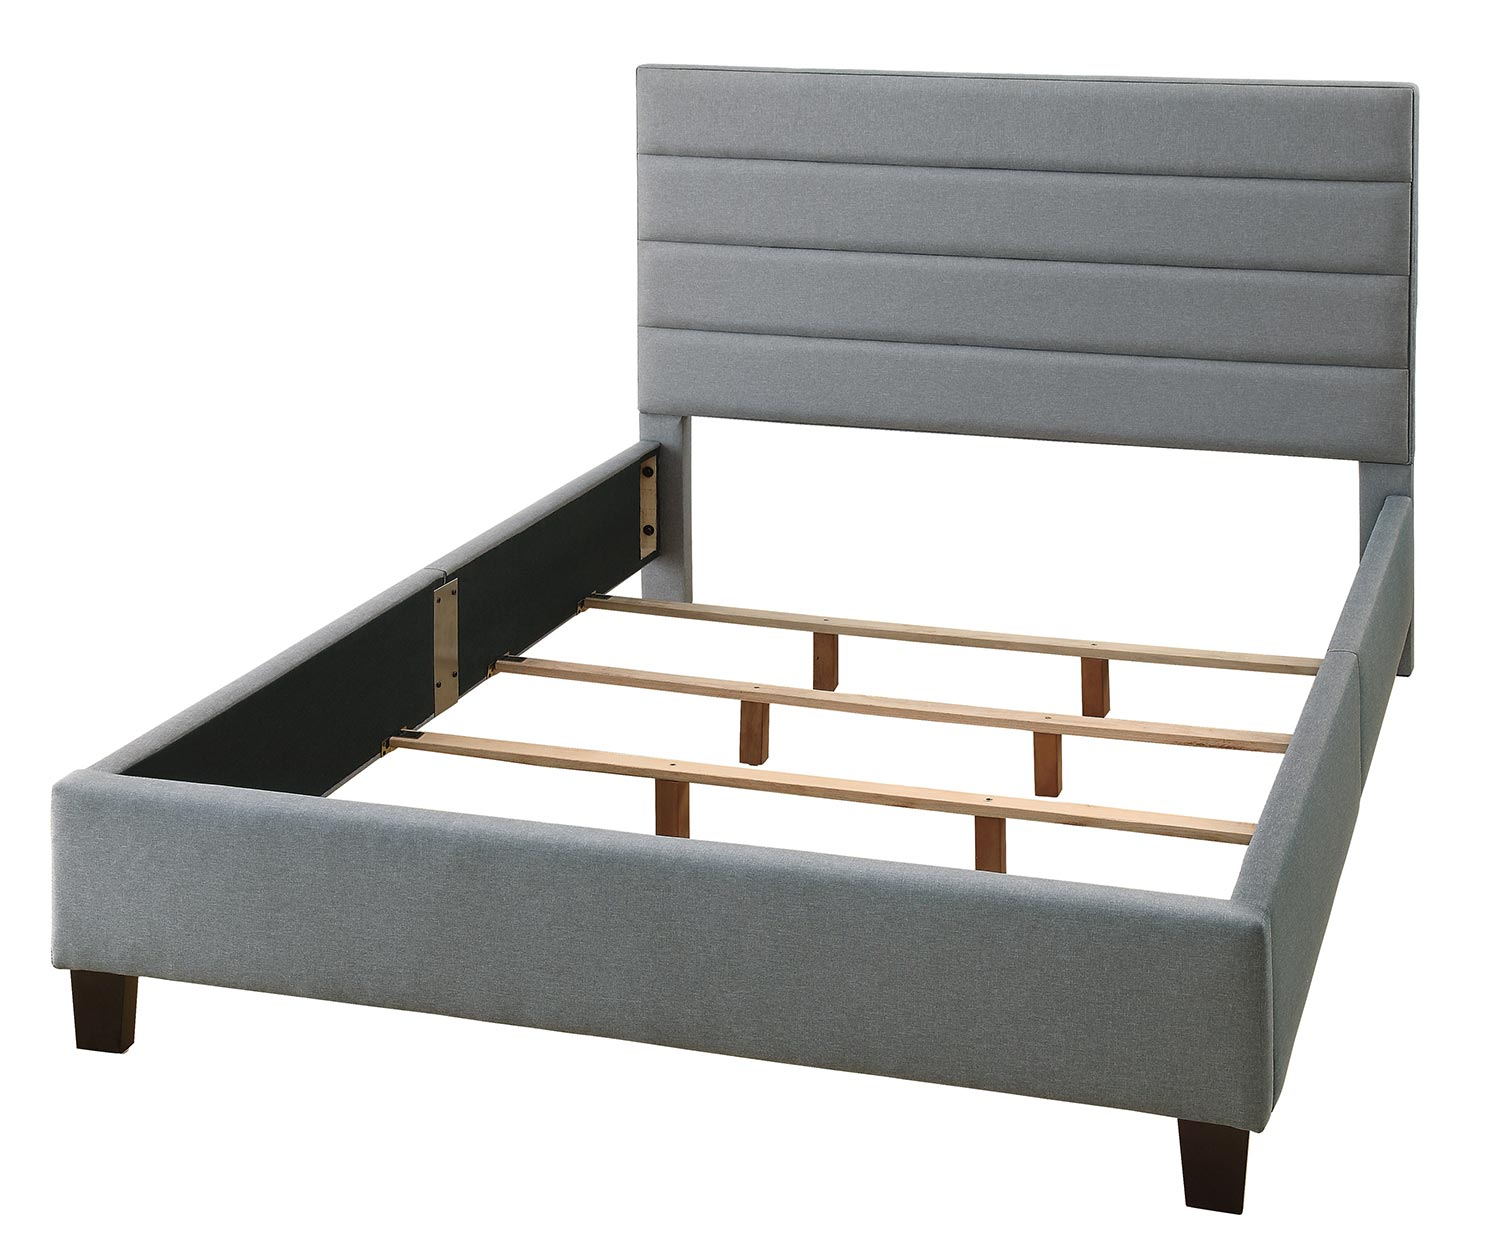 Homelegance Fugue Bed - Gray